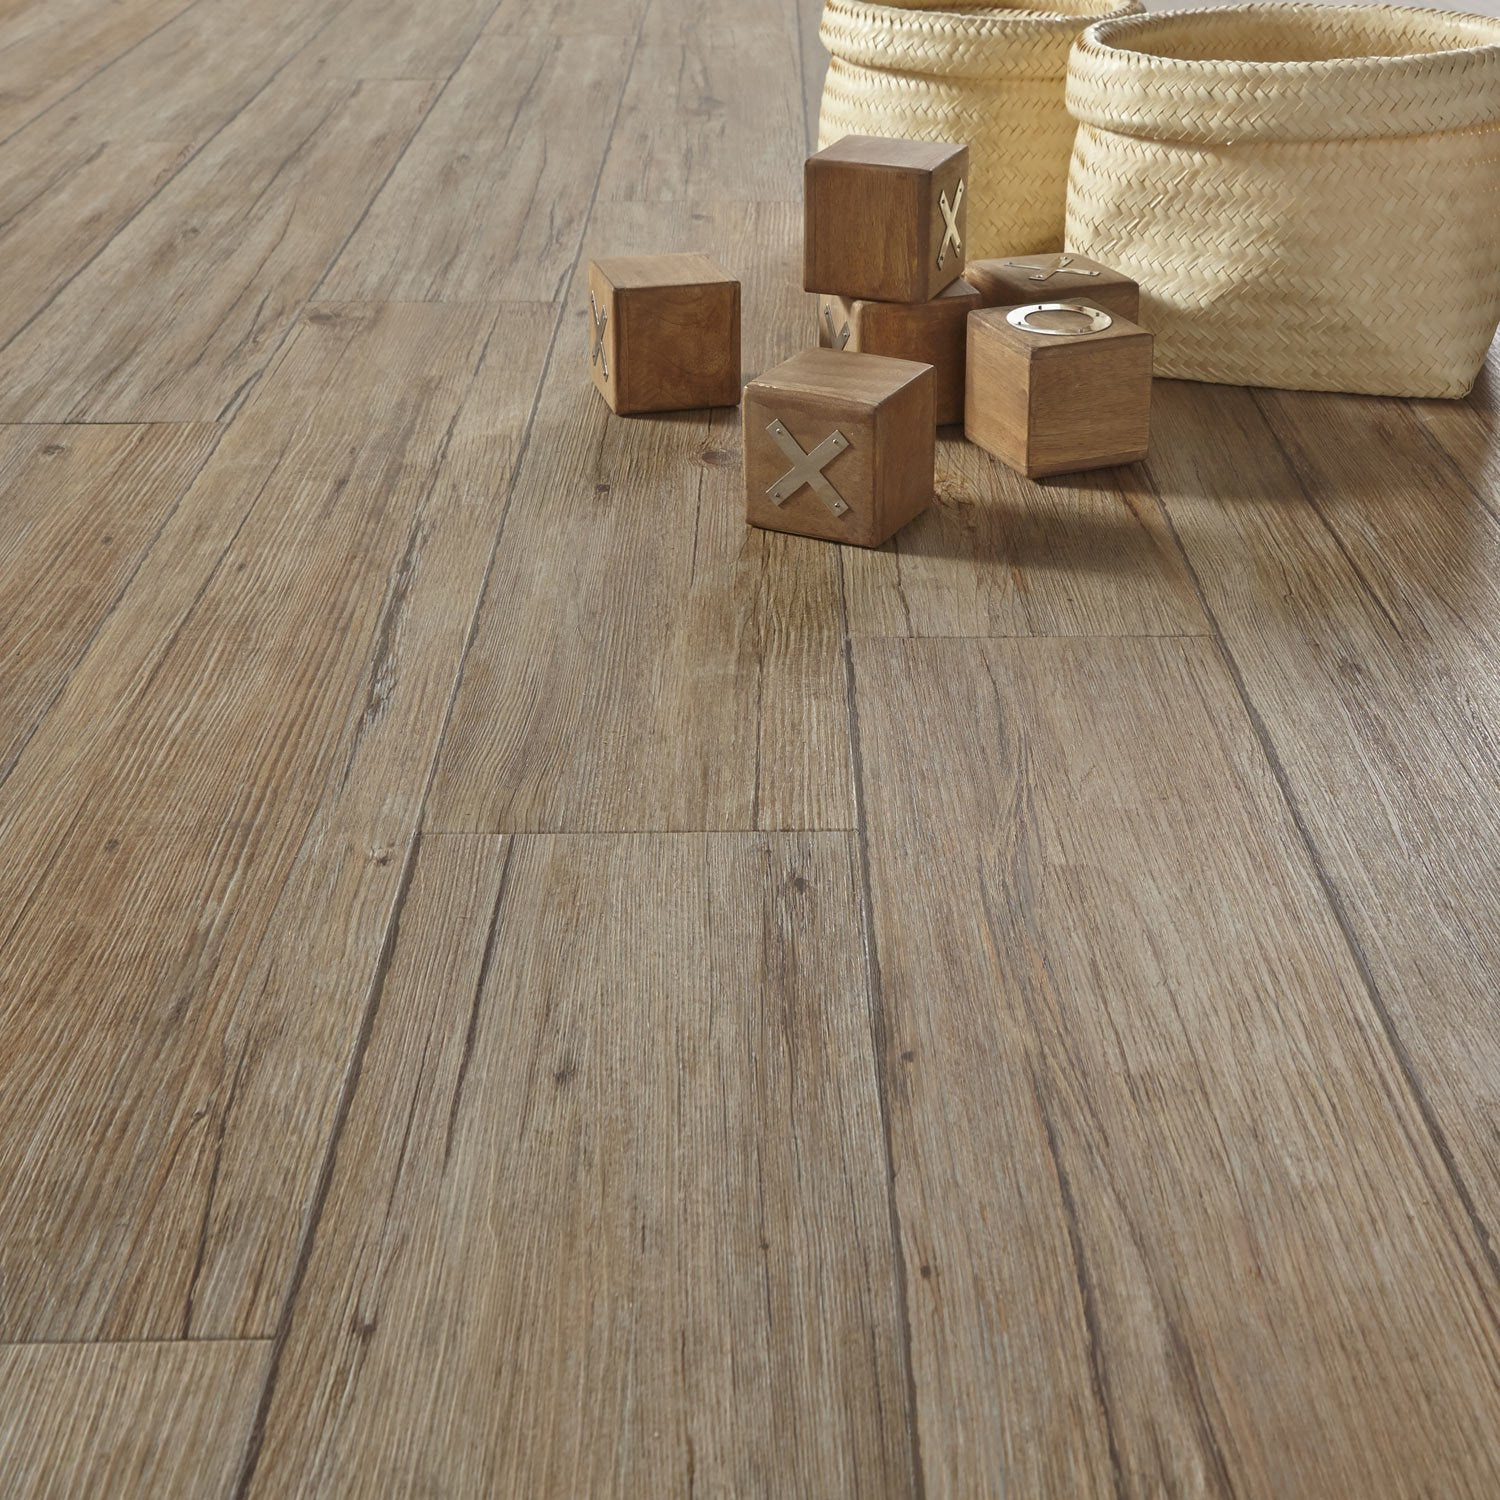 Lame pvc adh sive gerflor senso rustic 3ds muscade leroy for Dalles pvc clipsables gerflor